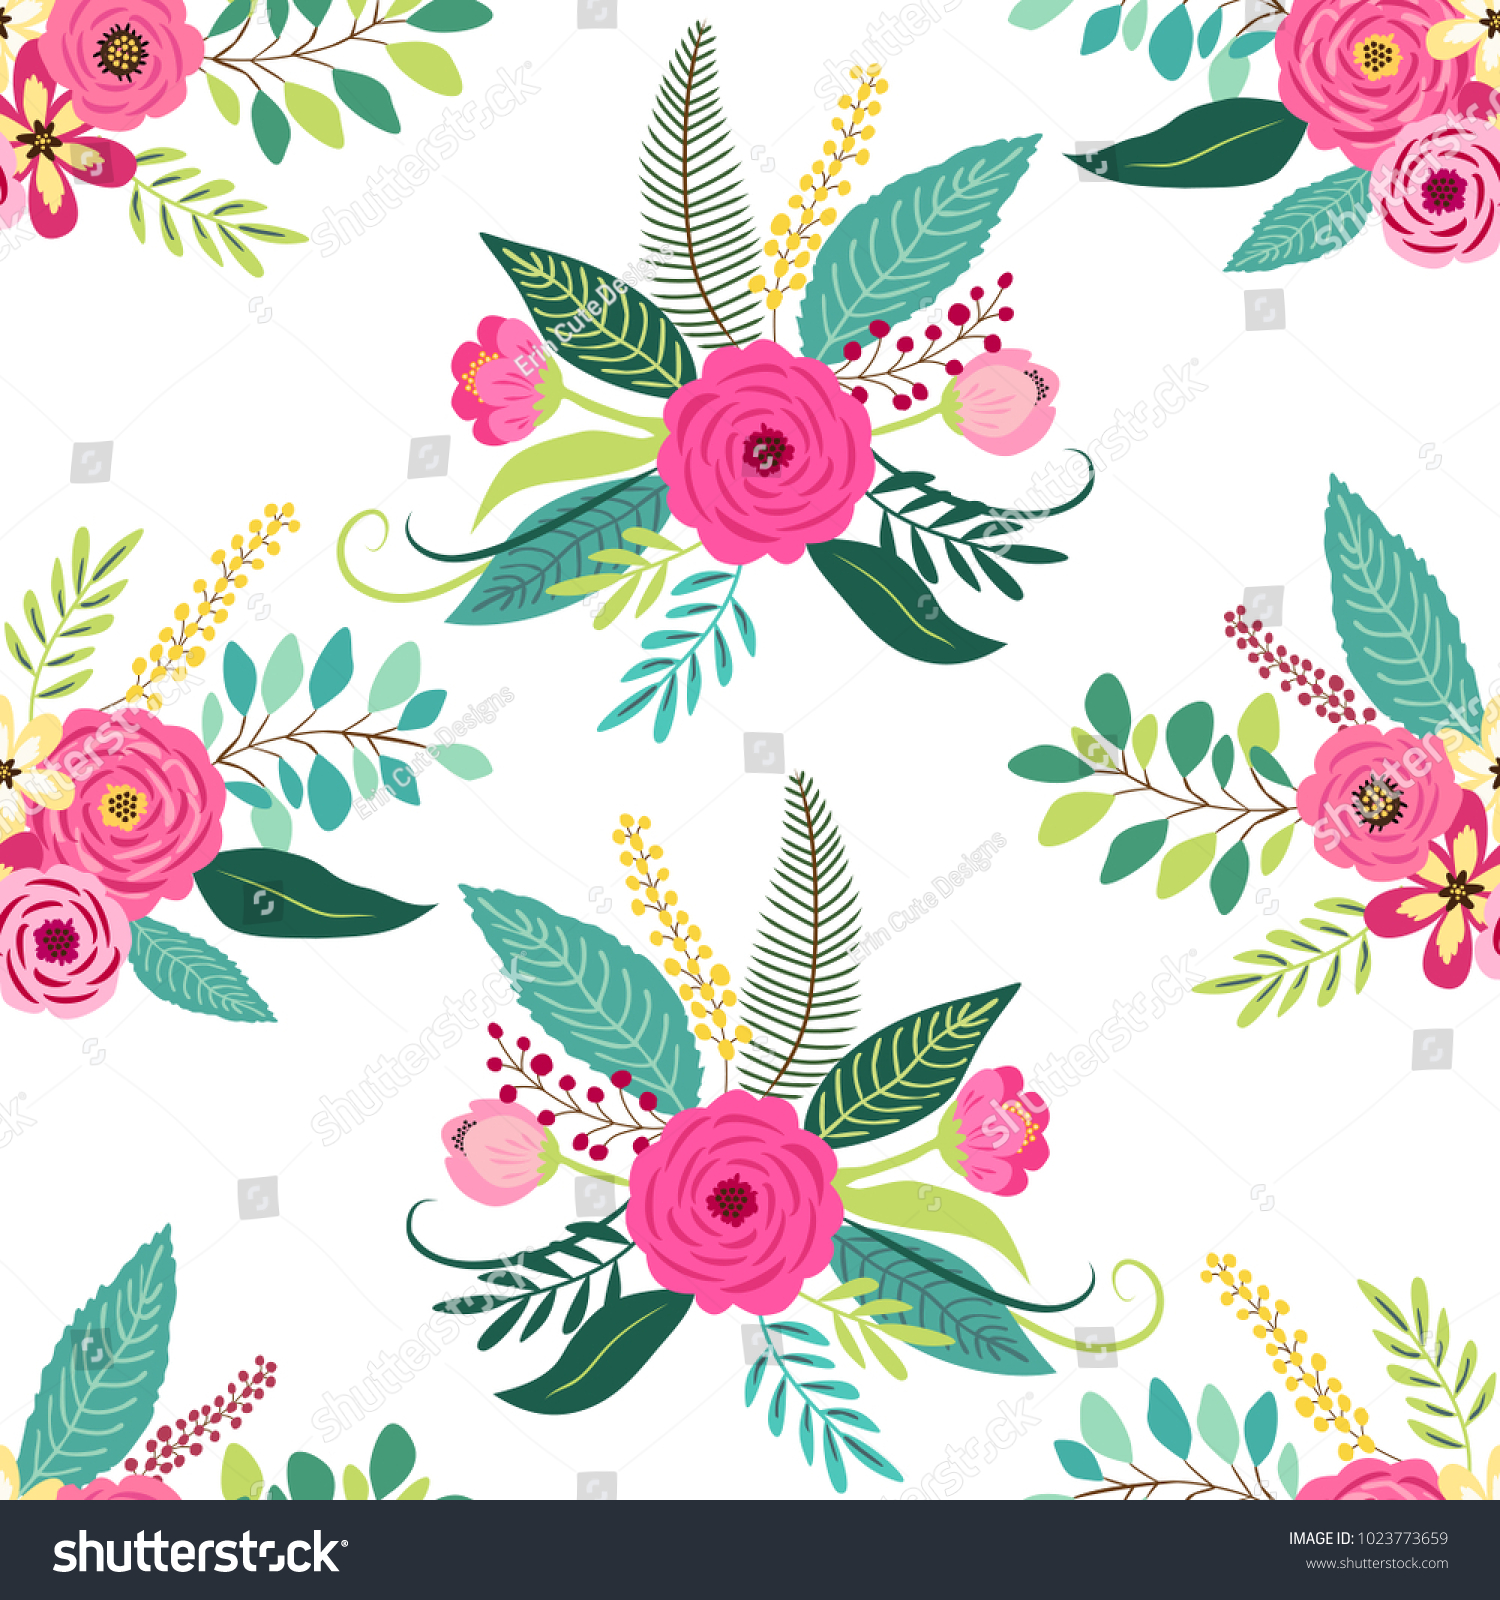 Cute Seamless Pattern With Vintage Elements As Rustic Hand Drawn